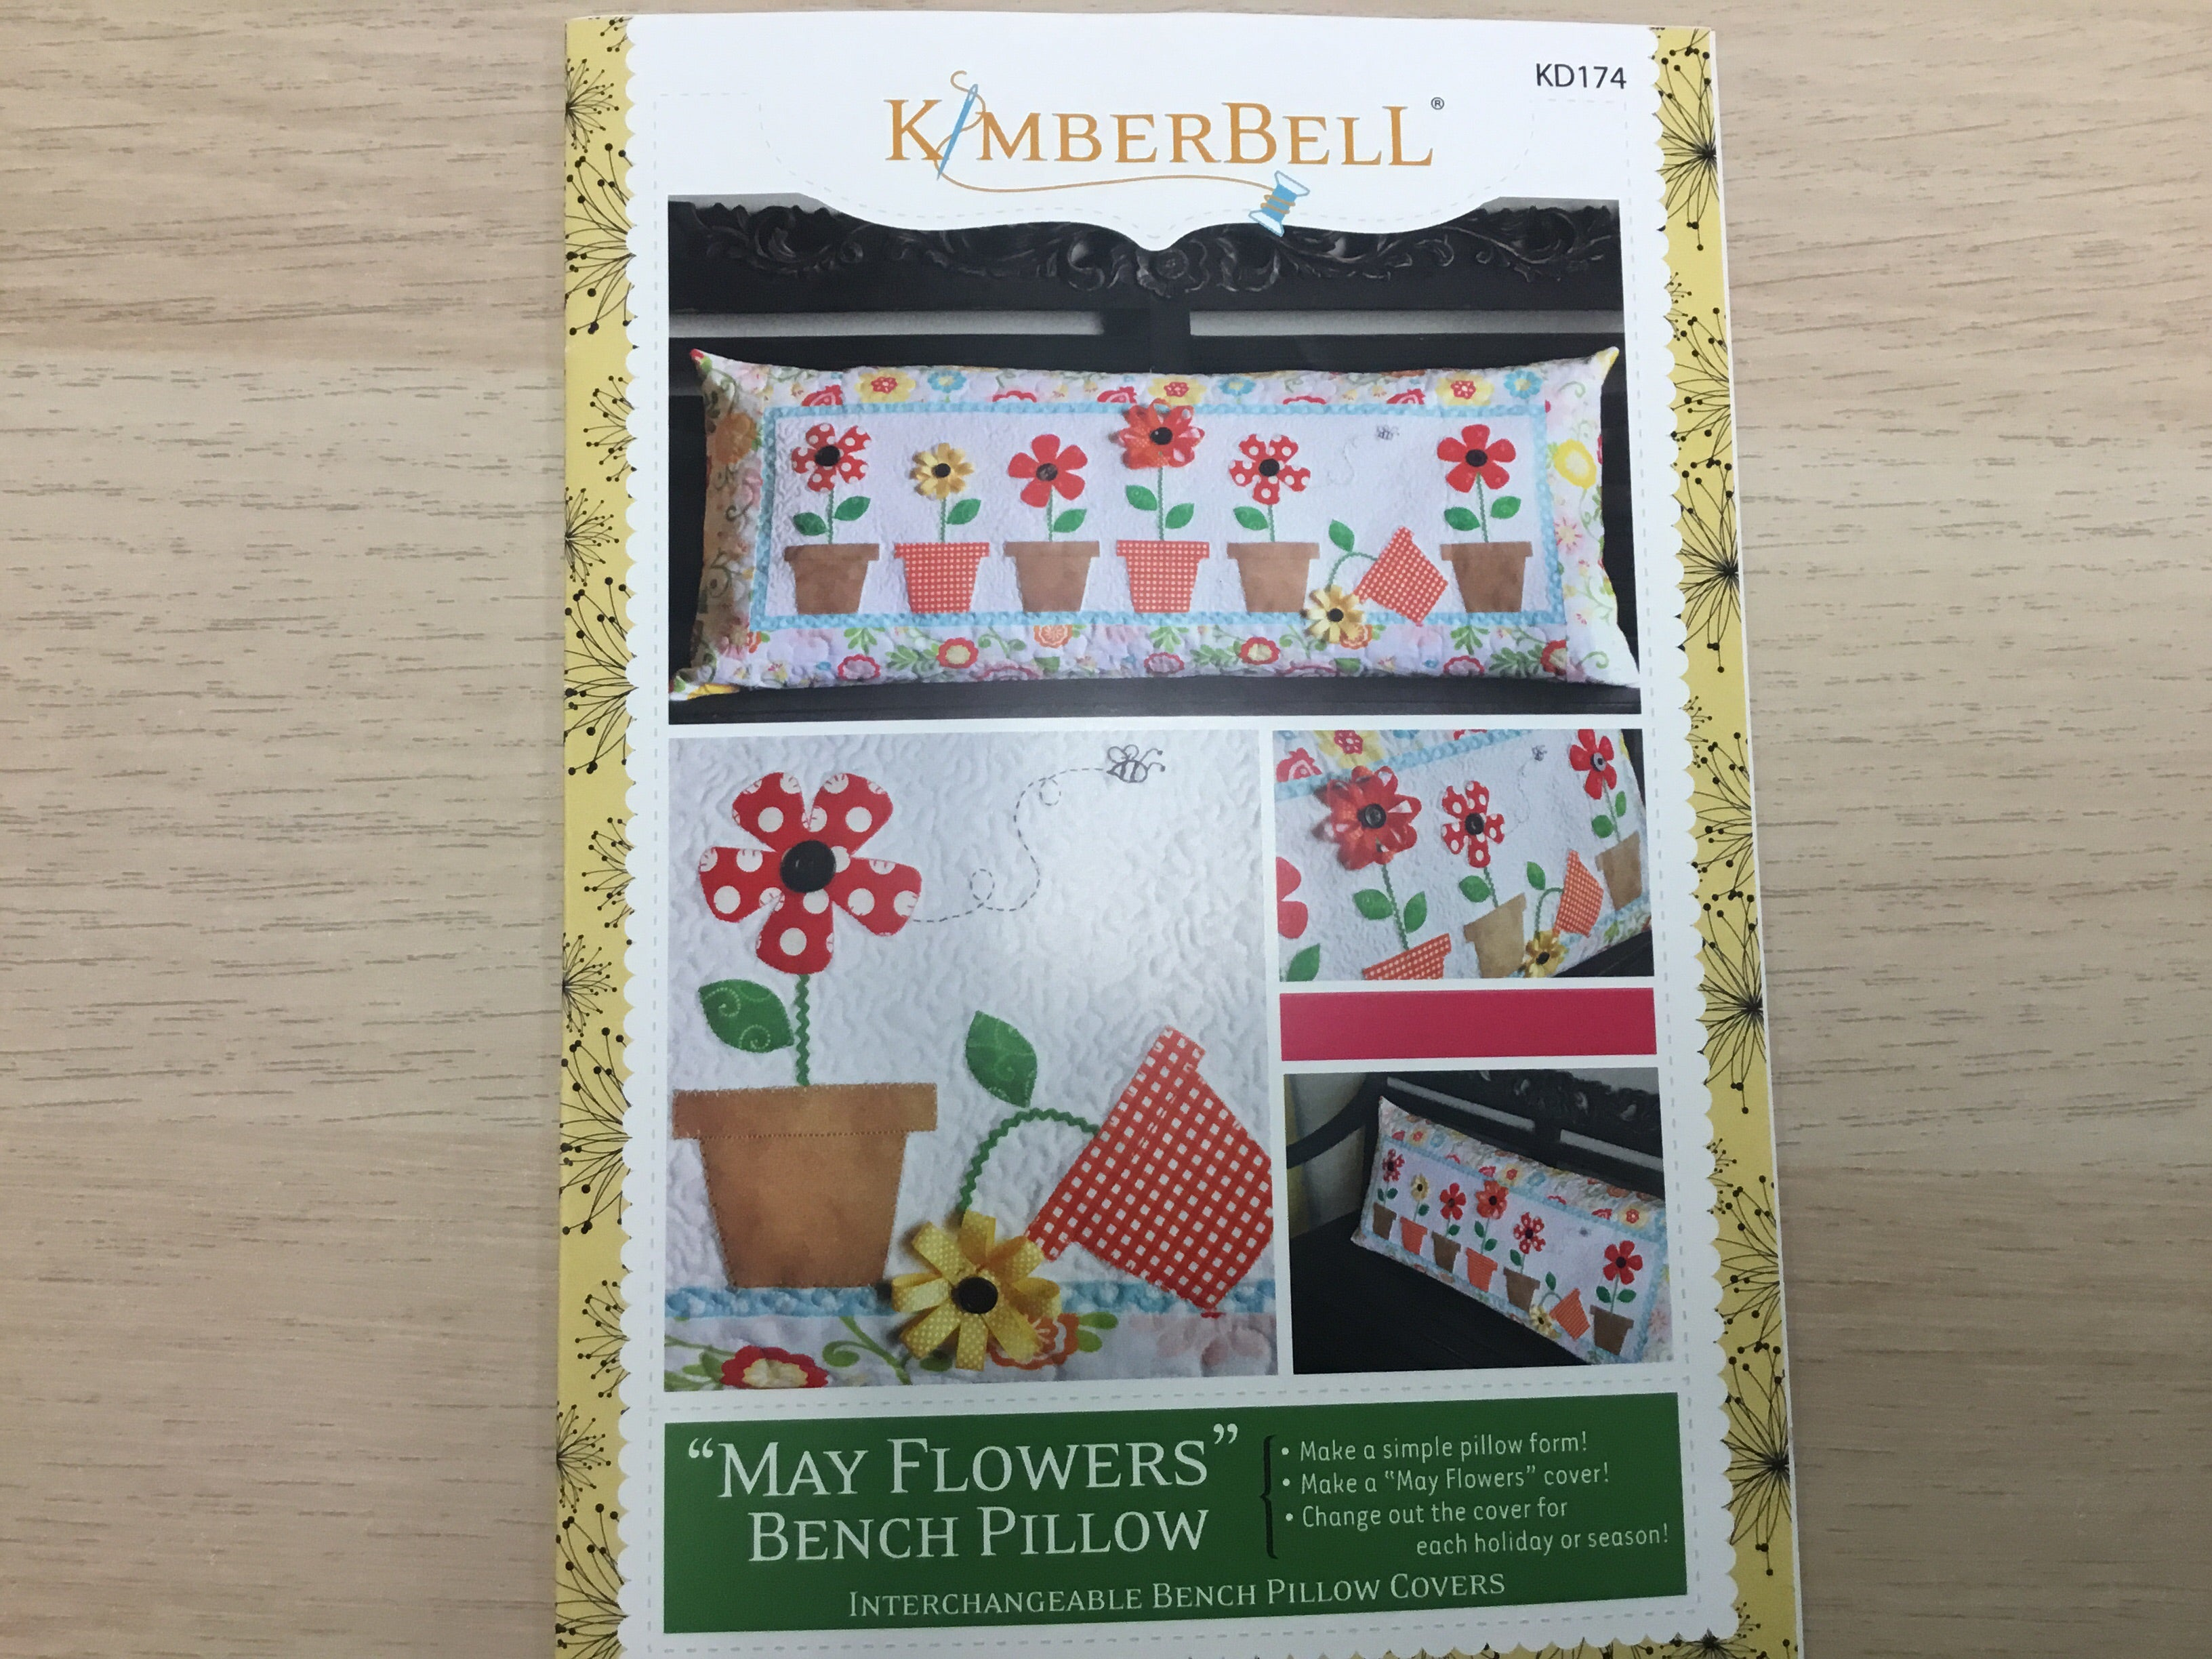 May Flowers Bench Pillow Pattern - KD174